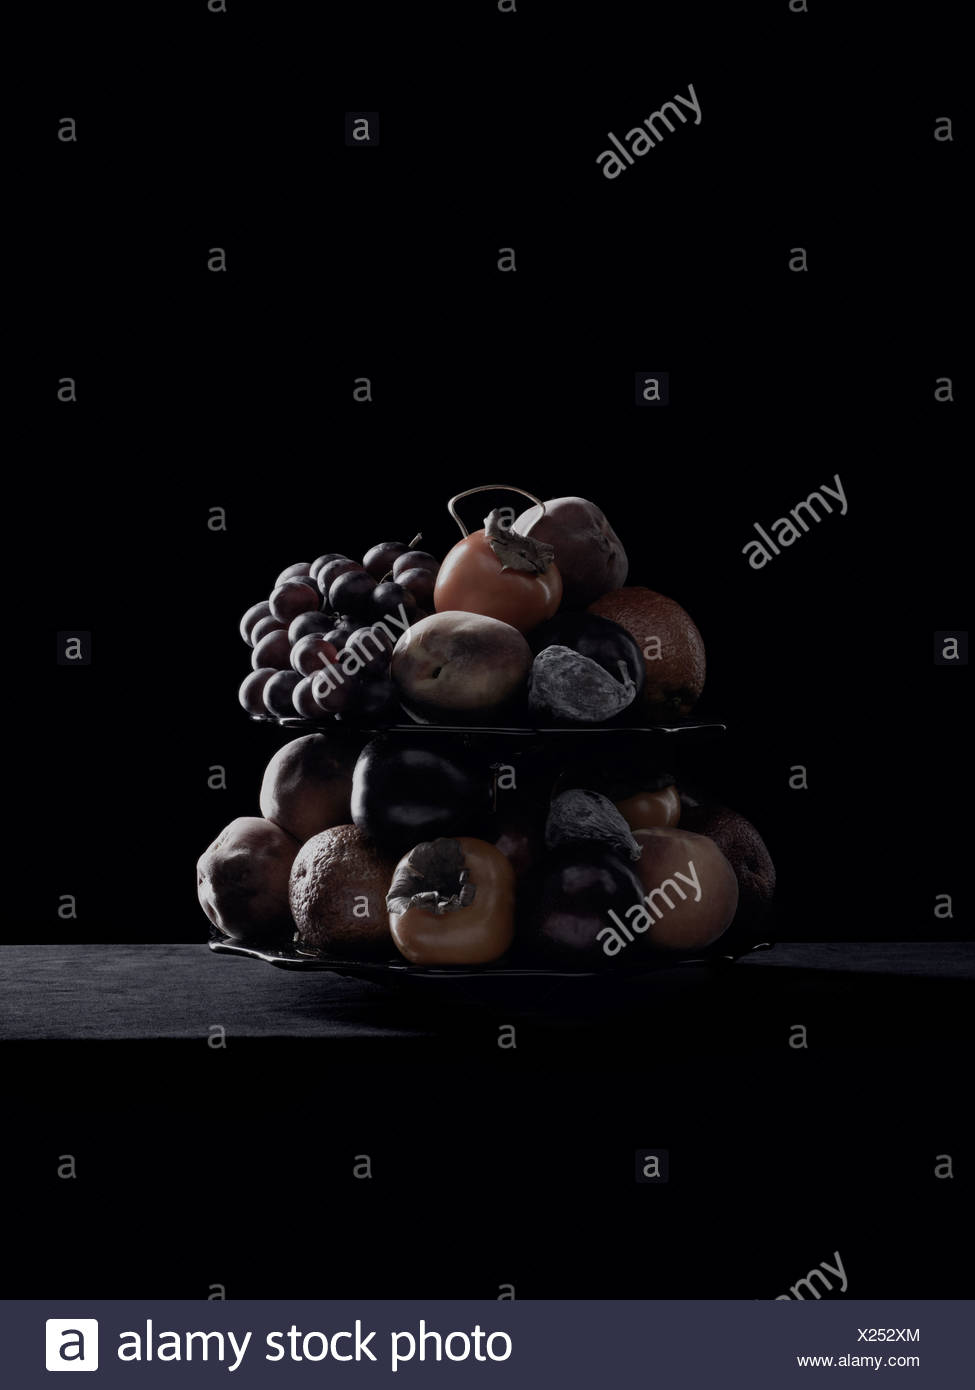 Decayed fruit - Stock Image